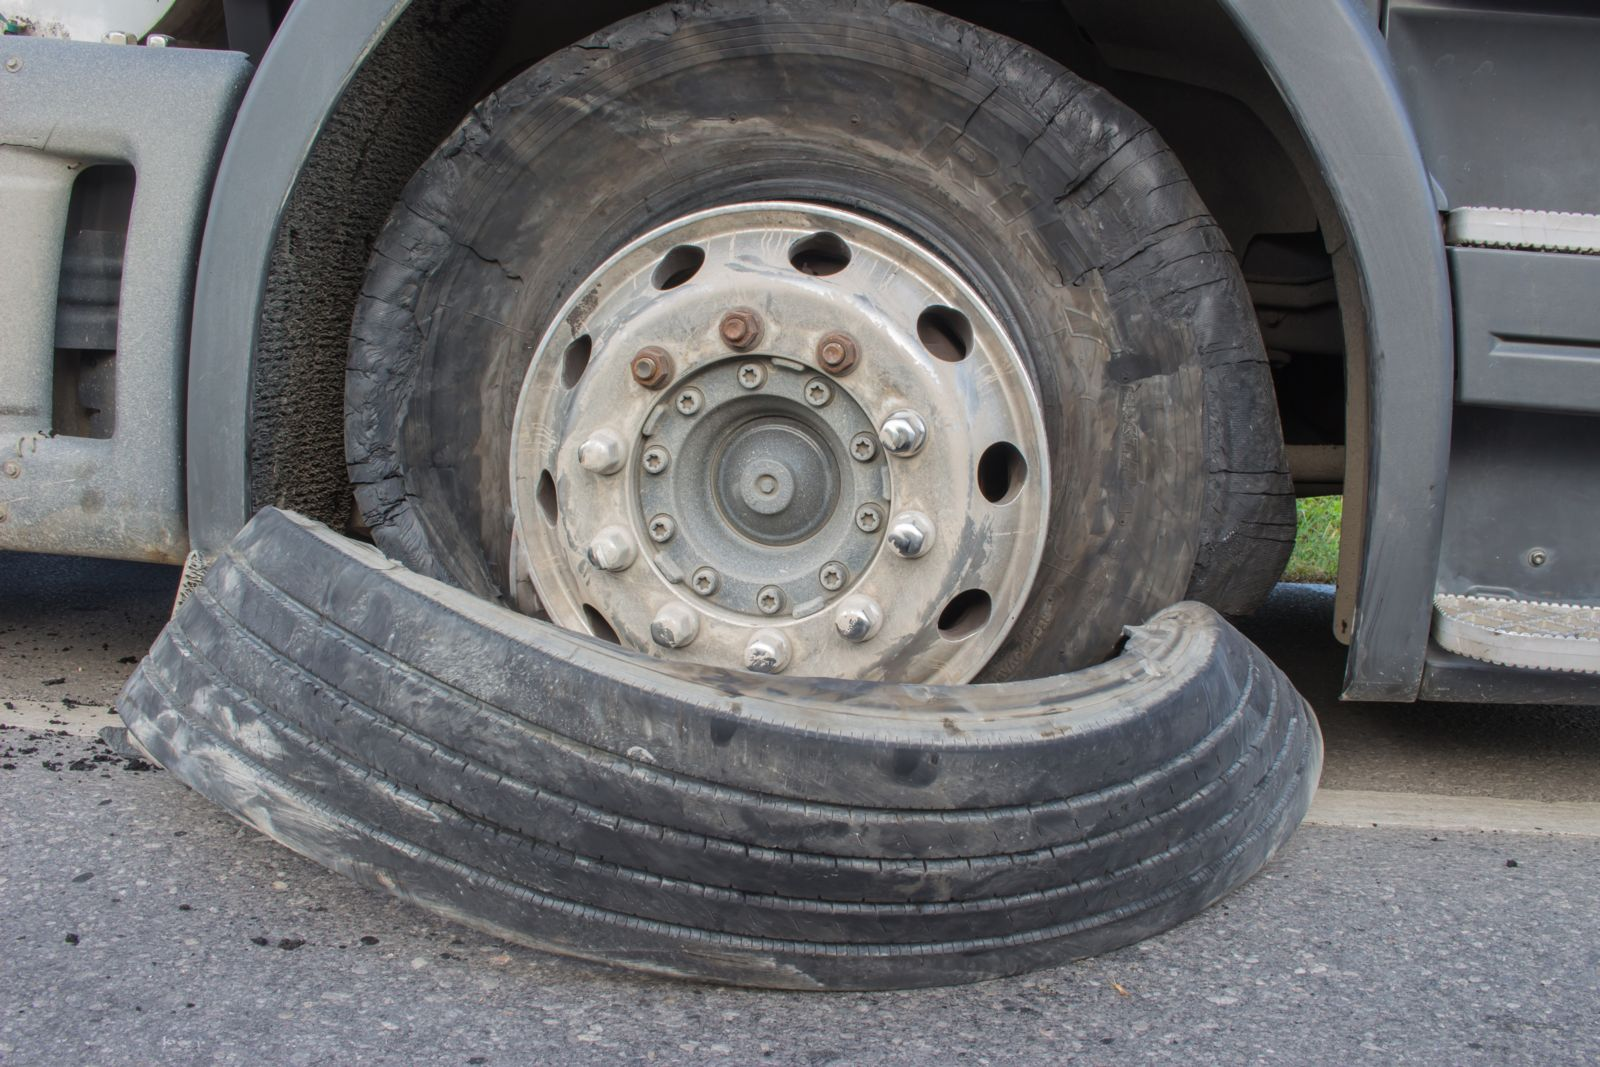 Who is at fault for a truck tire blowout accident  Max Meyers